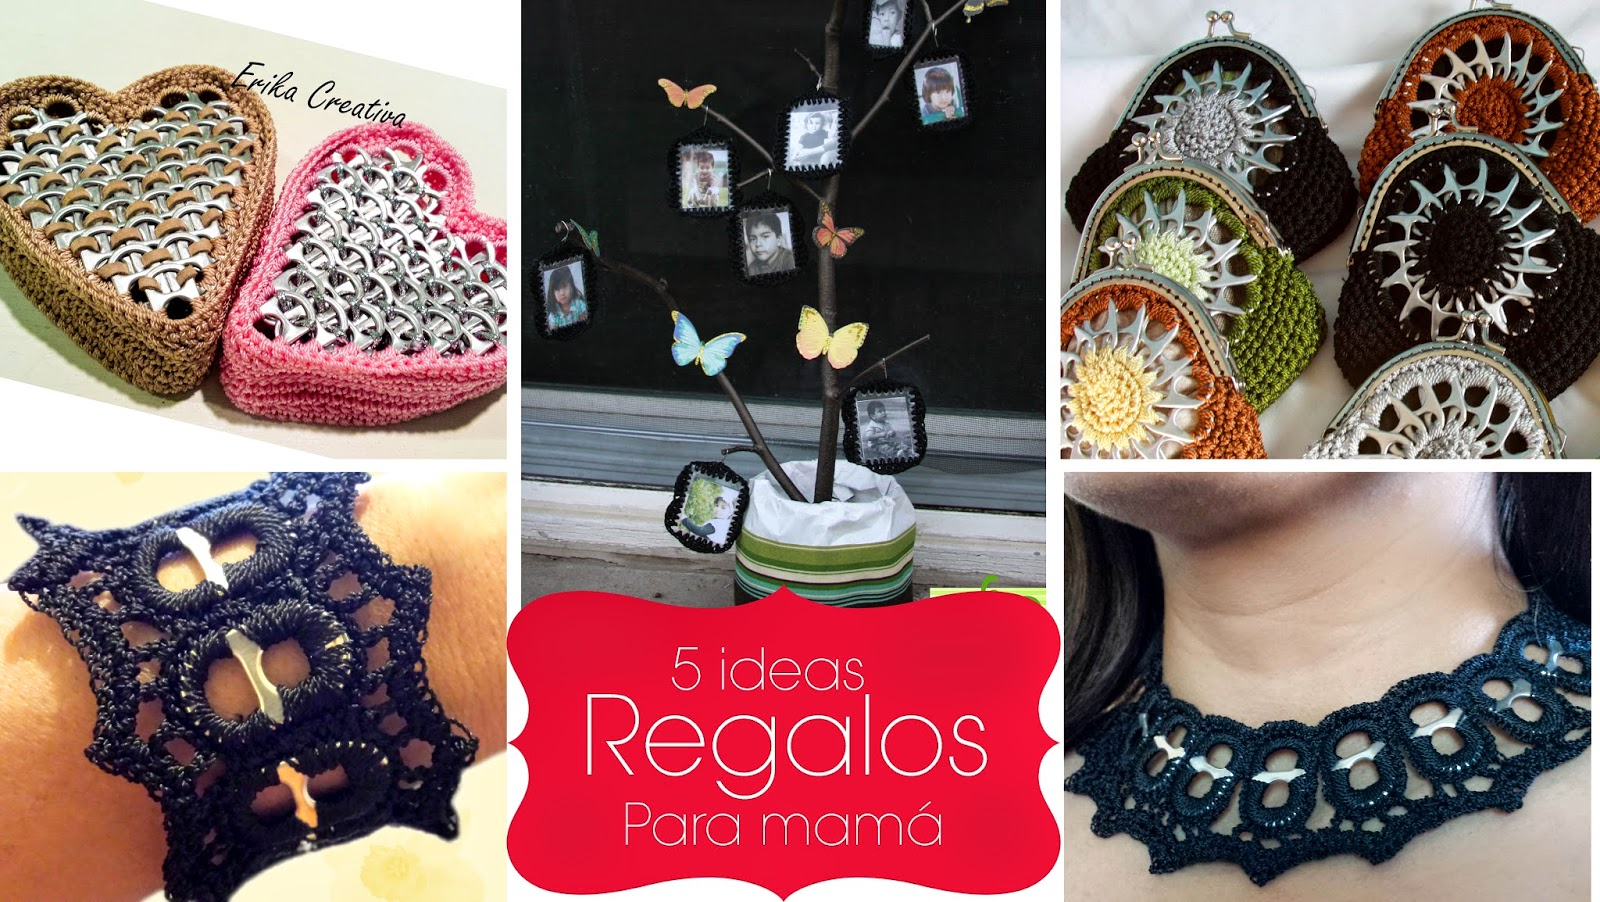 5 ideas de regalos para mam 5 gift ideas for mothers for Ideas para mama